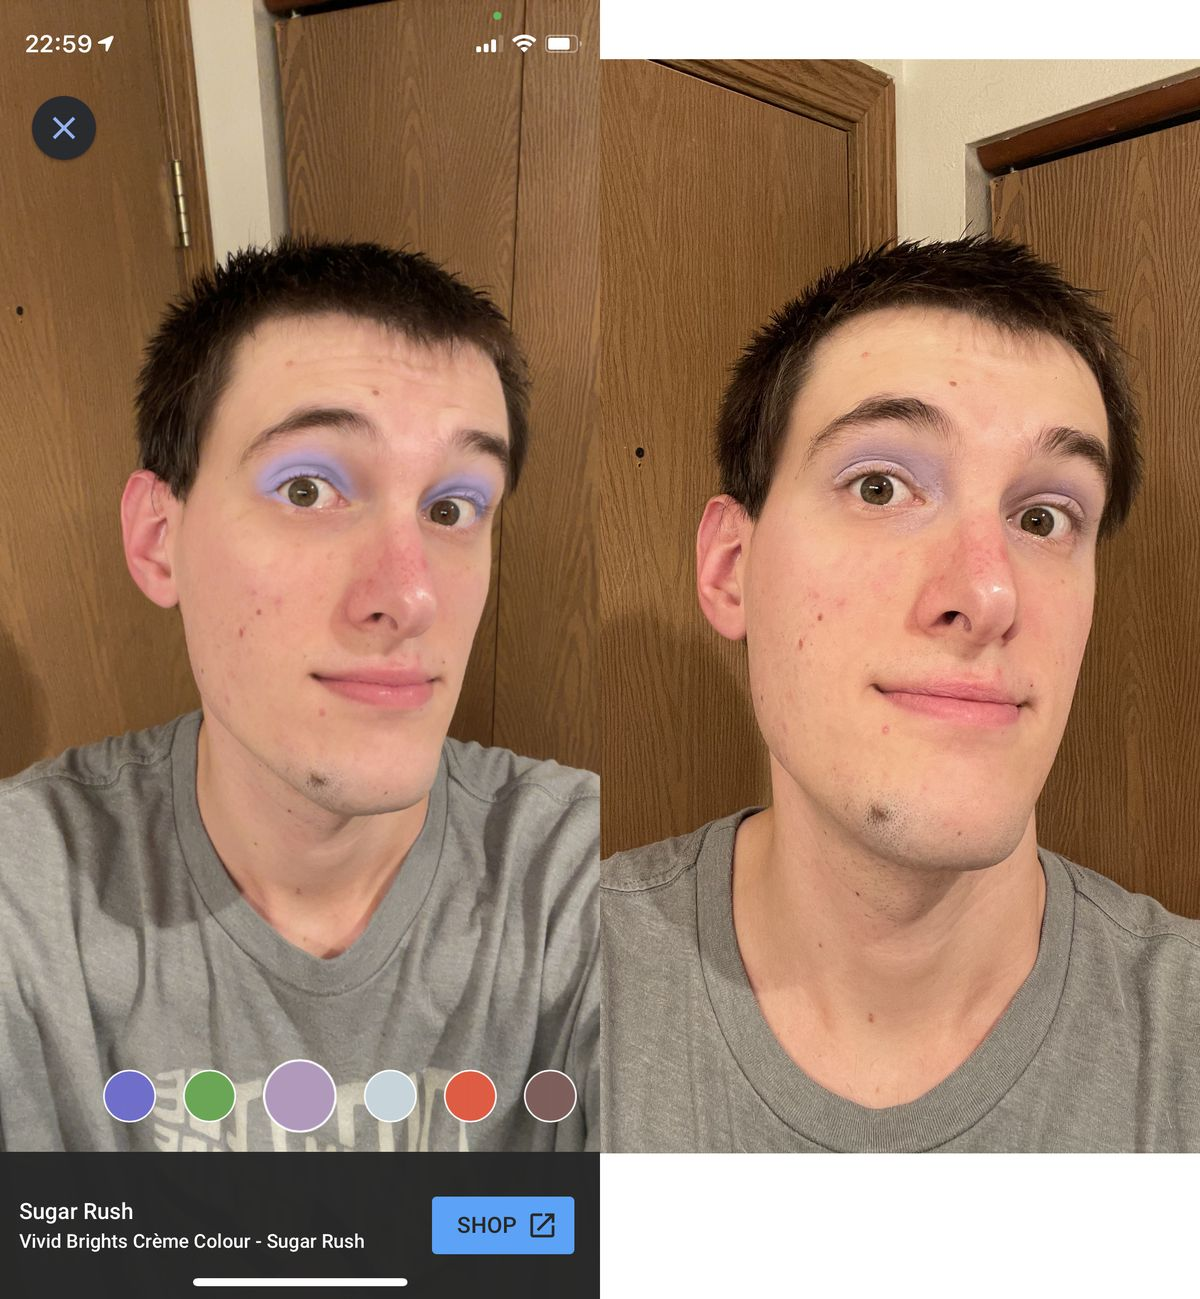 A comparison of the same makeup using Google's AR preview and the real thing